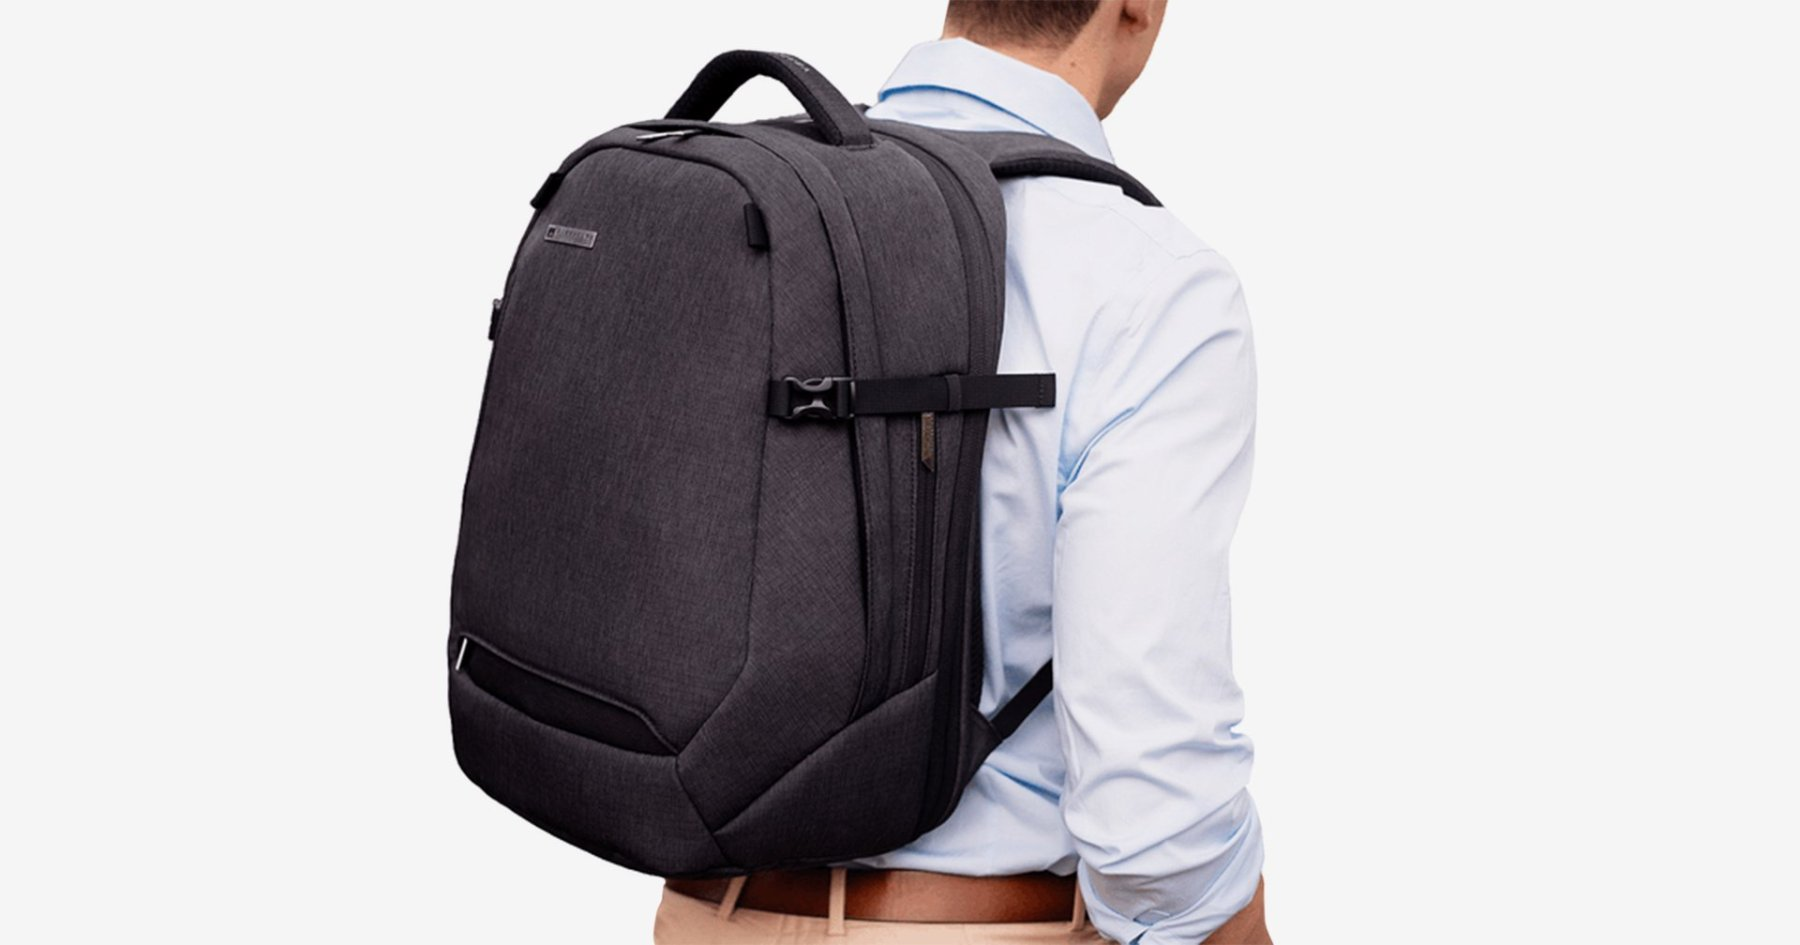 This Might Be the Most Function-Minded Bag We've Ever Seen